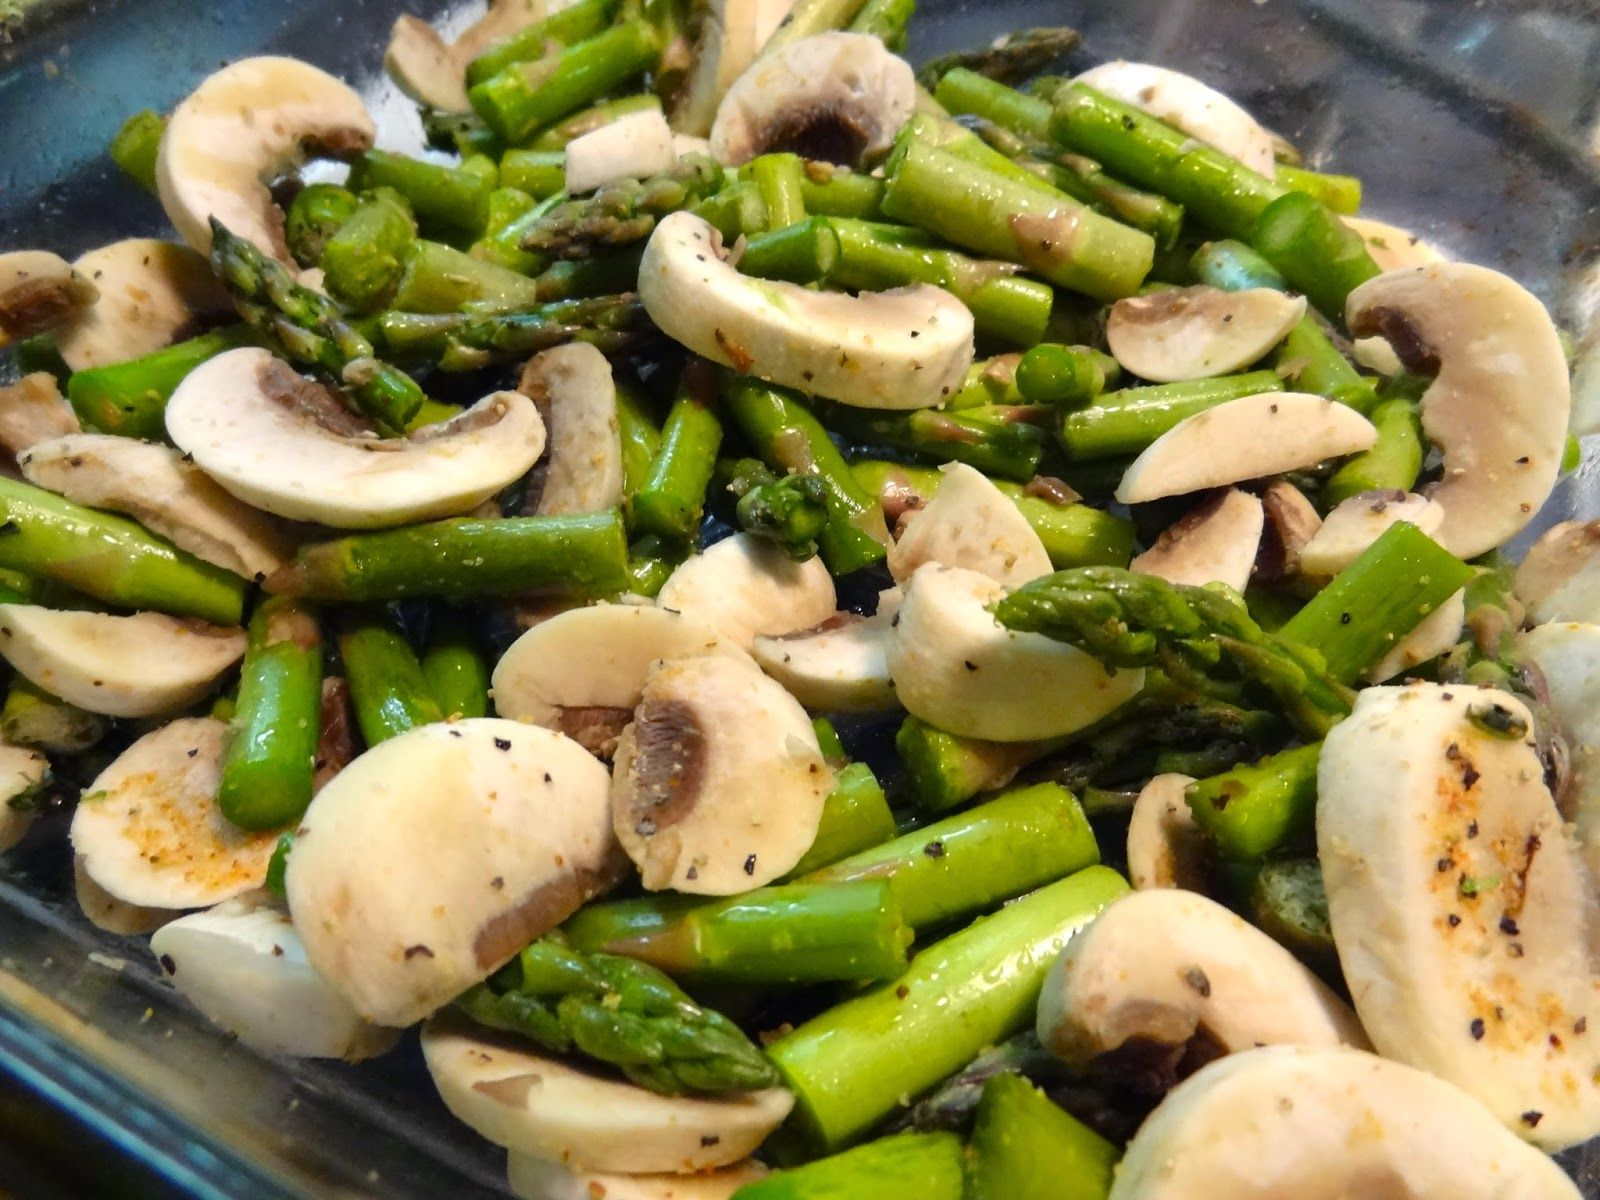 Roasted Tuscan Herb Asparagus & Mushrooms - so so easy and so so good!  #advocare #advocare24daychallenge #cleaneating #oliandve #glutenfree #dairyfree @AdvoCare International, L.P.